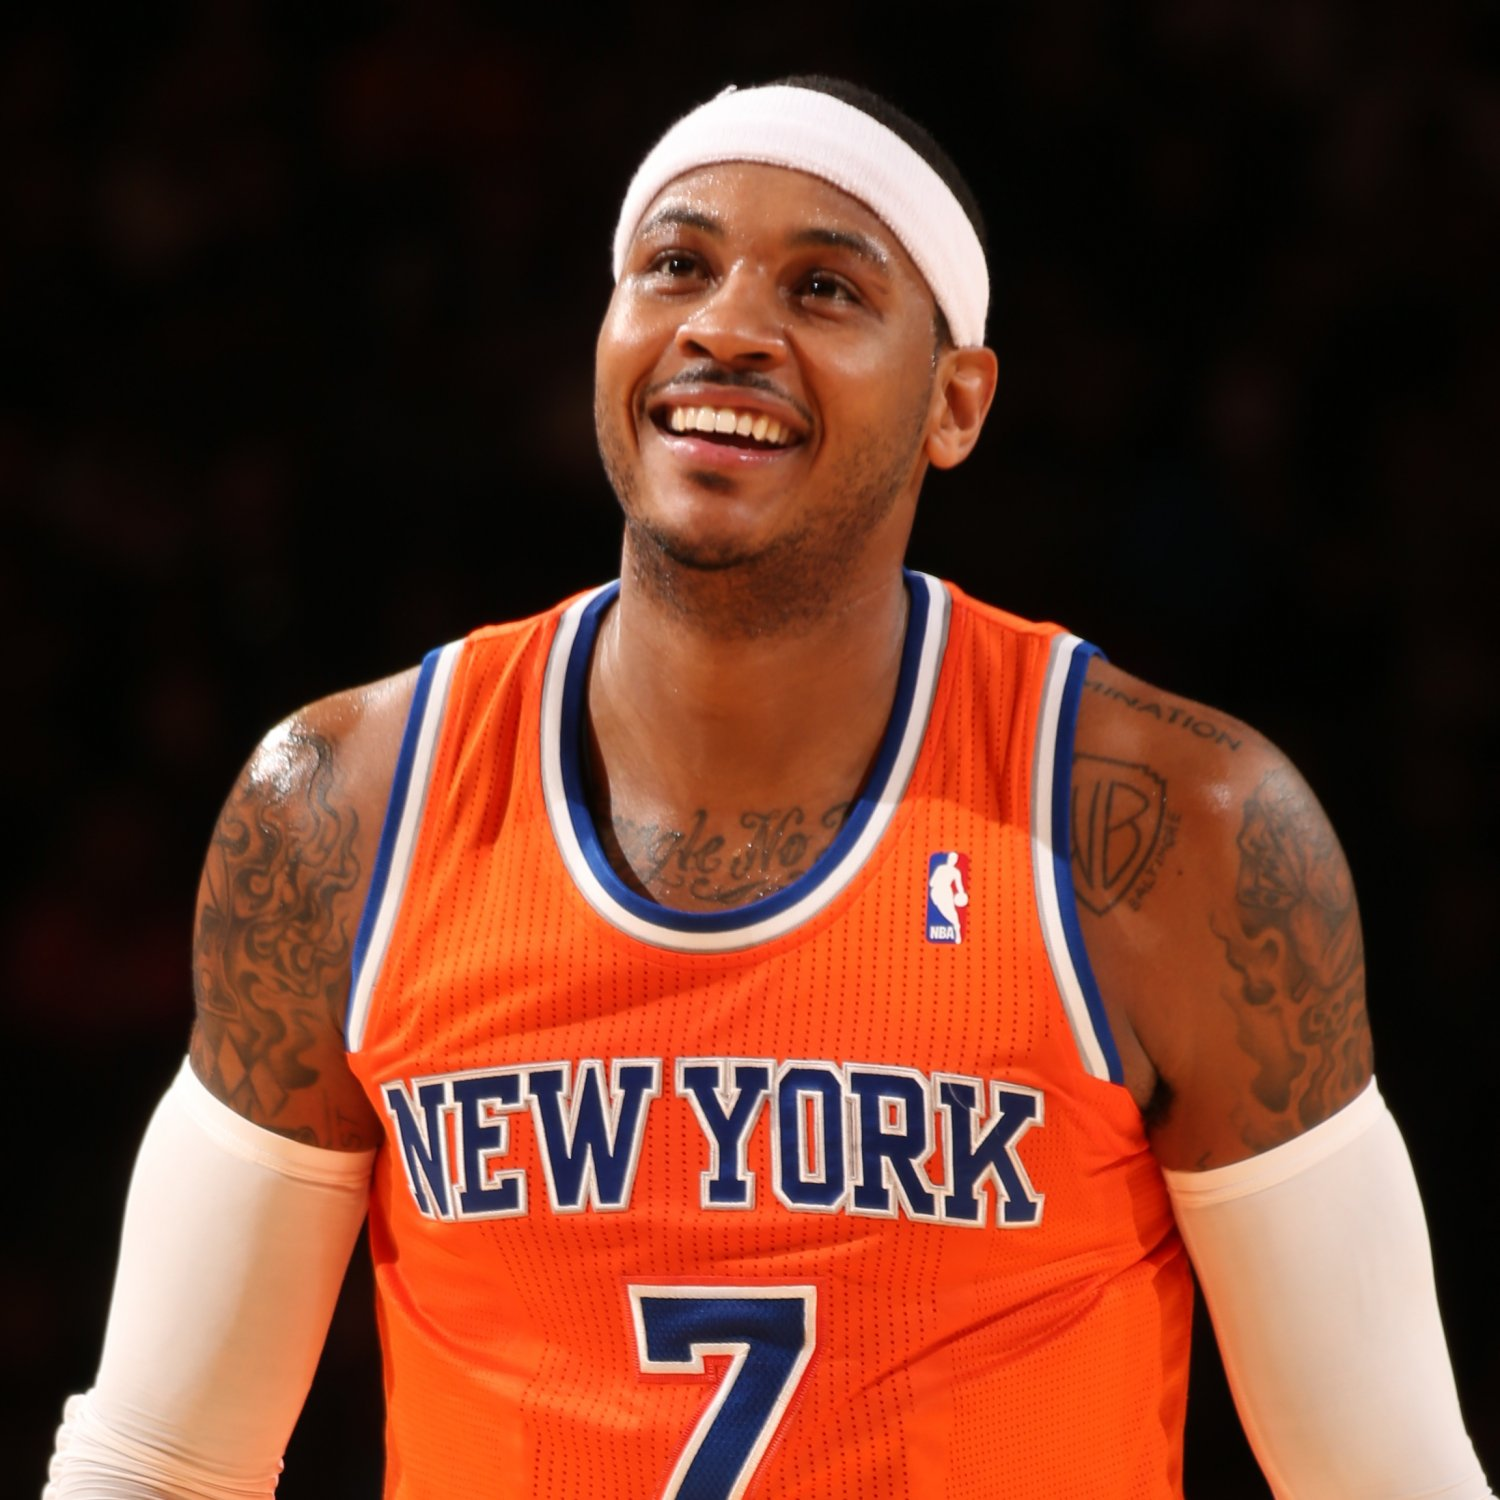 Basketball Player Carmelo Anthony - age: 33